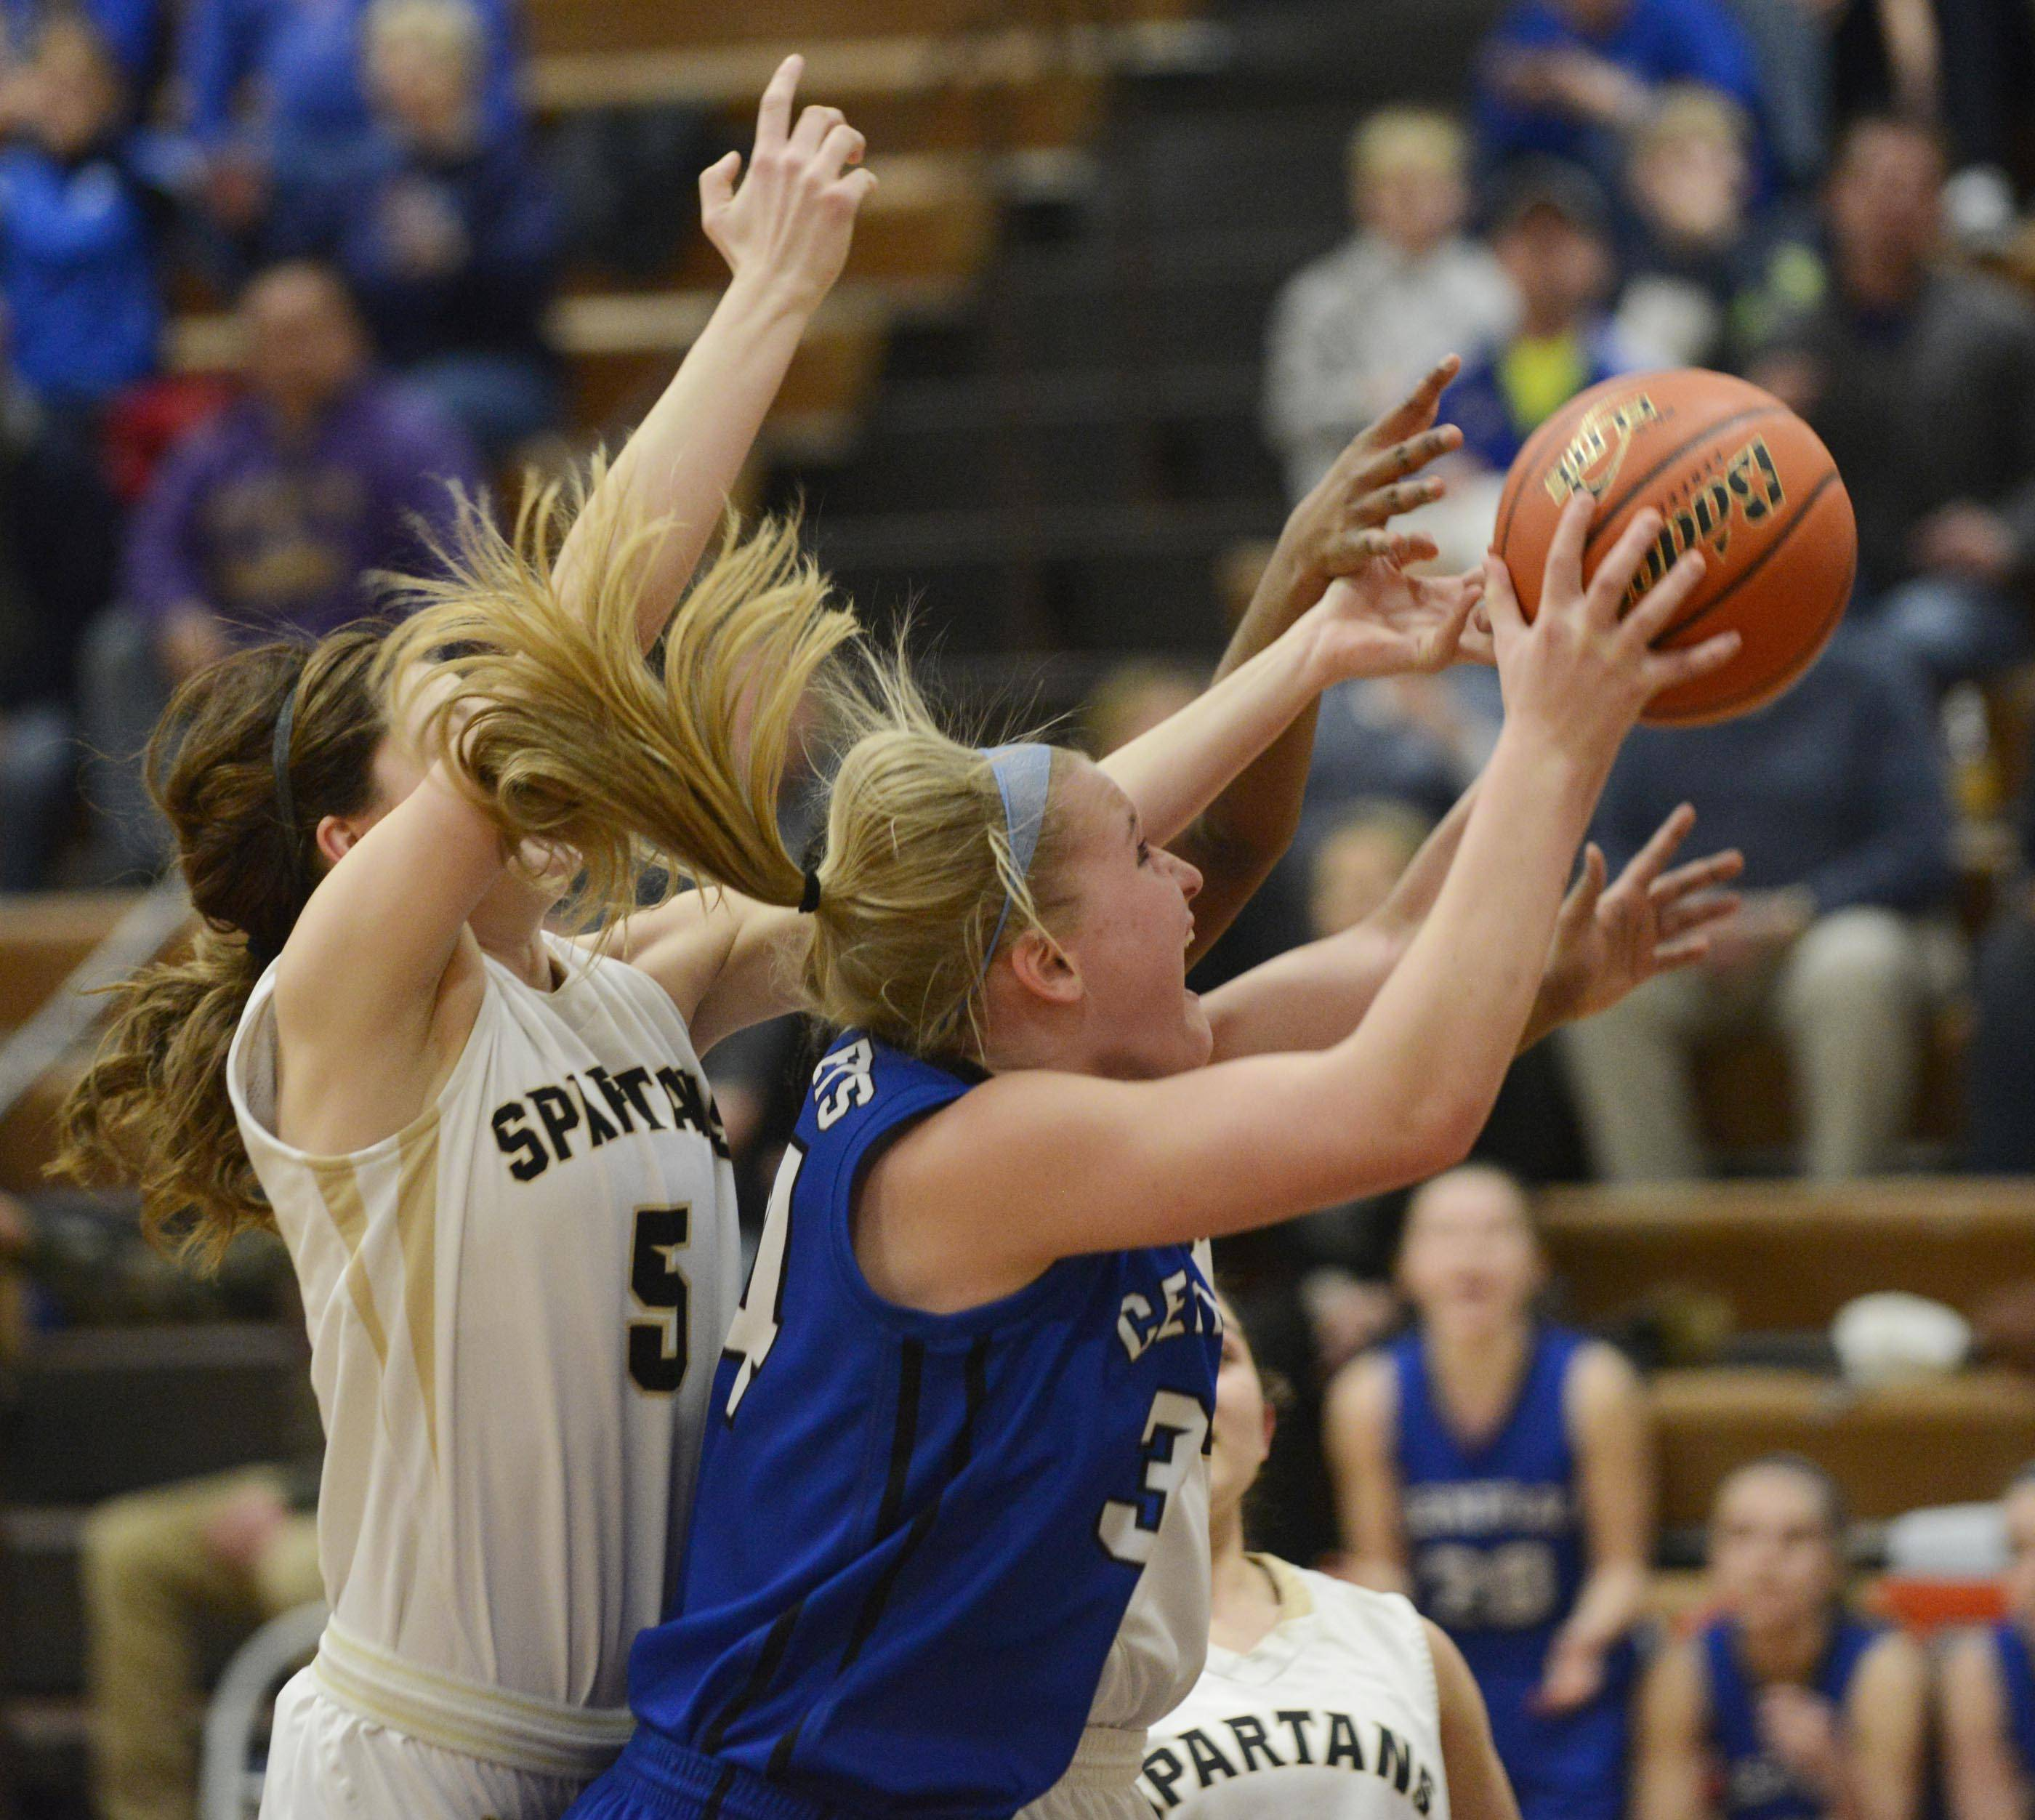 Images: Burlington Central vs. Sycamore girls basketball